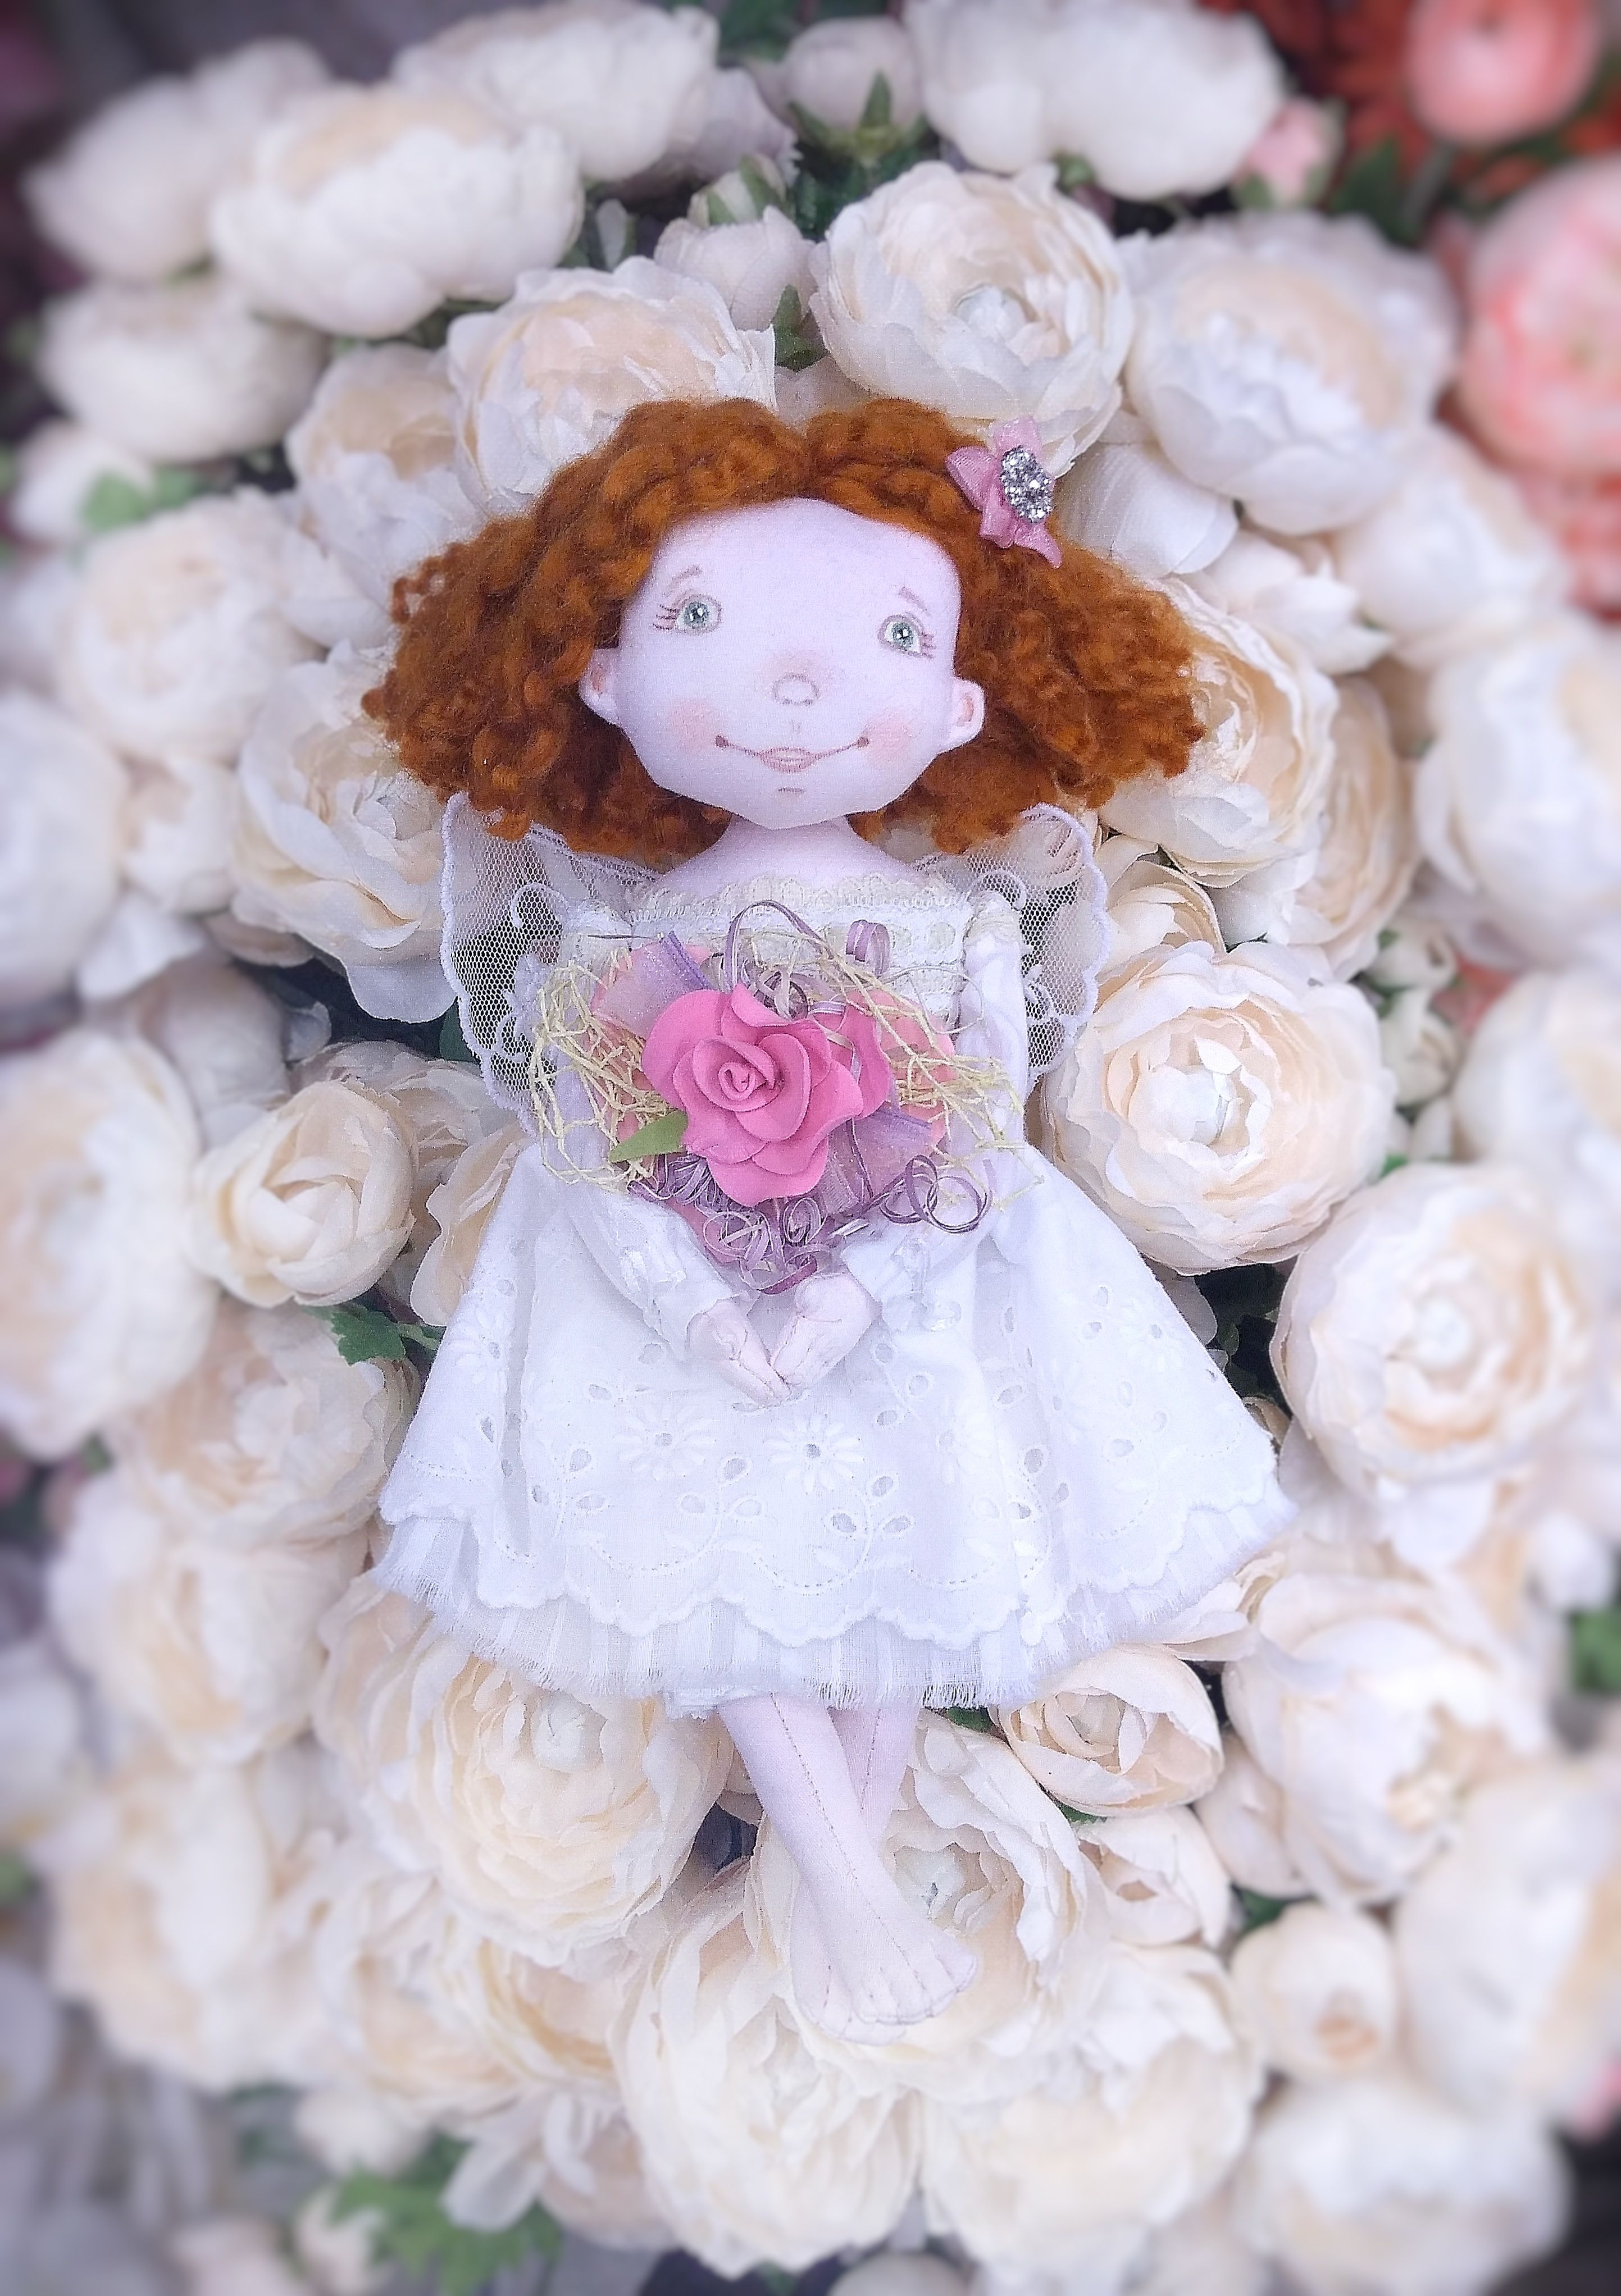 Little angel doll collectible angel nursery doll decor gift for little angel doll collectible angel nursery doll decor gift for mothers day cloth red hair toy fairytail gift i love you gift gardian angel negle Choice Image